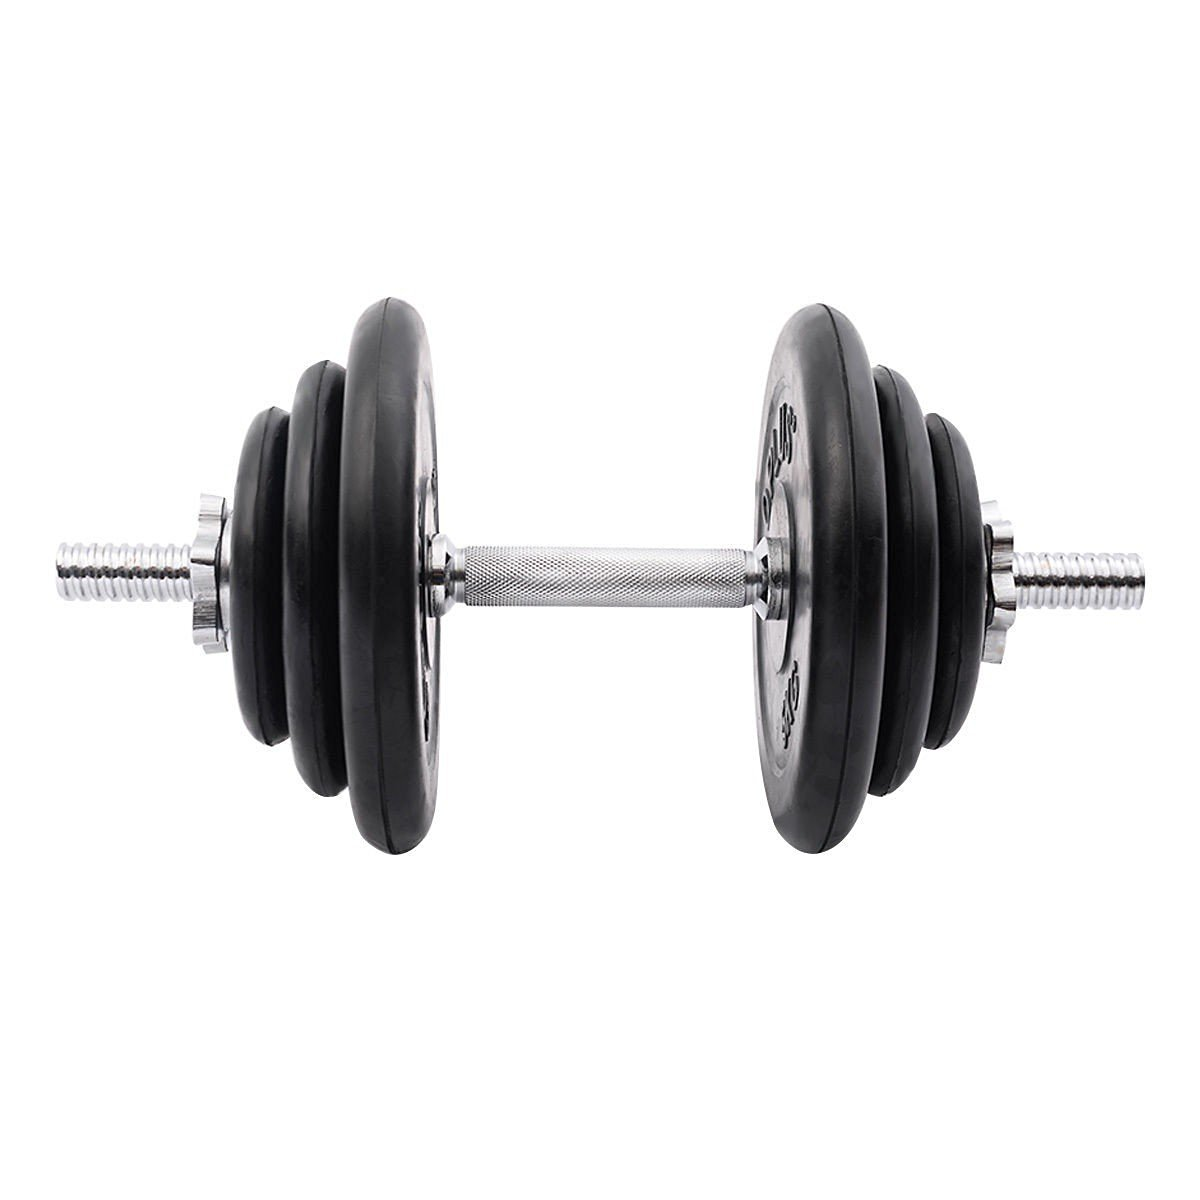 Weight Dumbbell Set 44 LB Adjustable Cap Gym Barbell Plates Body Workout - Weight Bar Of Durable Steel - Suitable For Basic Toning And Strength Exercises - Bars Are Able To Connect Securely